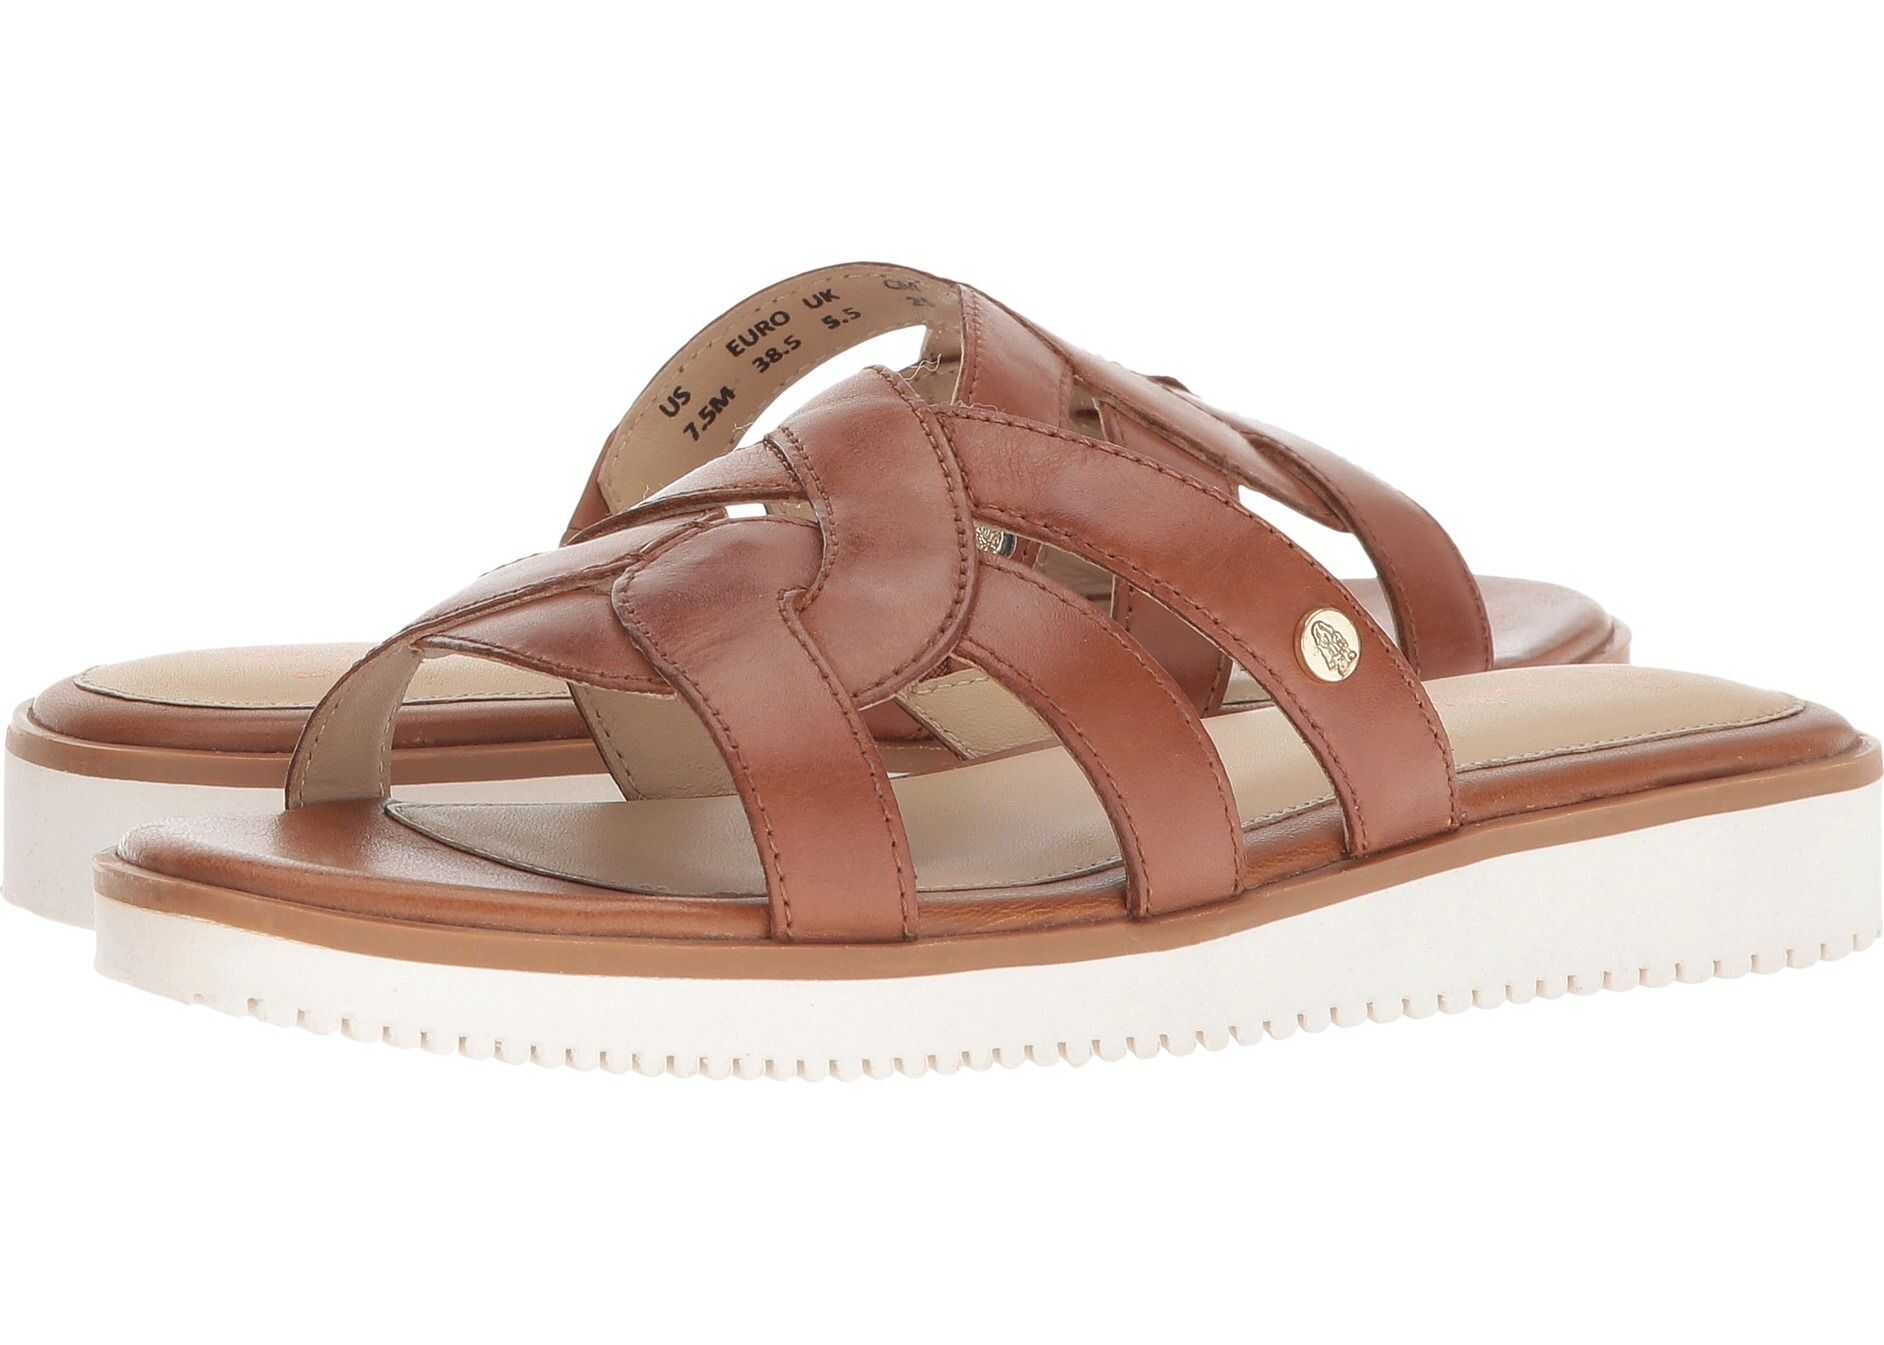 Hush Puppies Briard Braid Slide Tan Leather